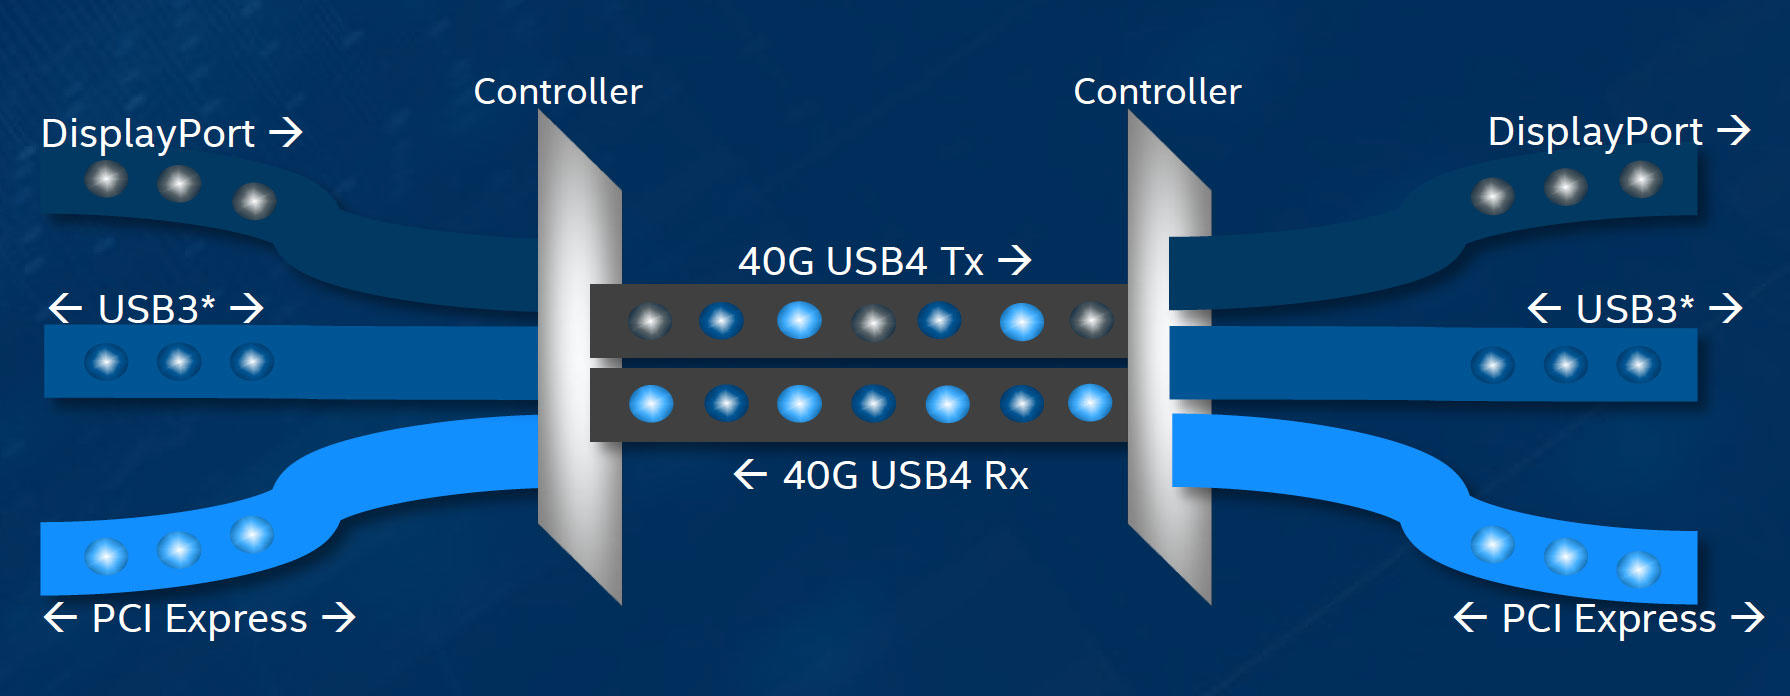 Intel's Thunderbolt today lets different types of data share the same wires, a technology that should help USB 4's flexibility in 2020.